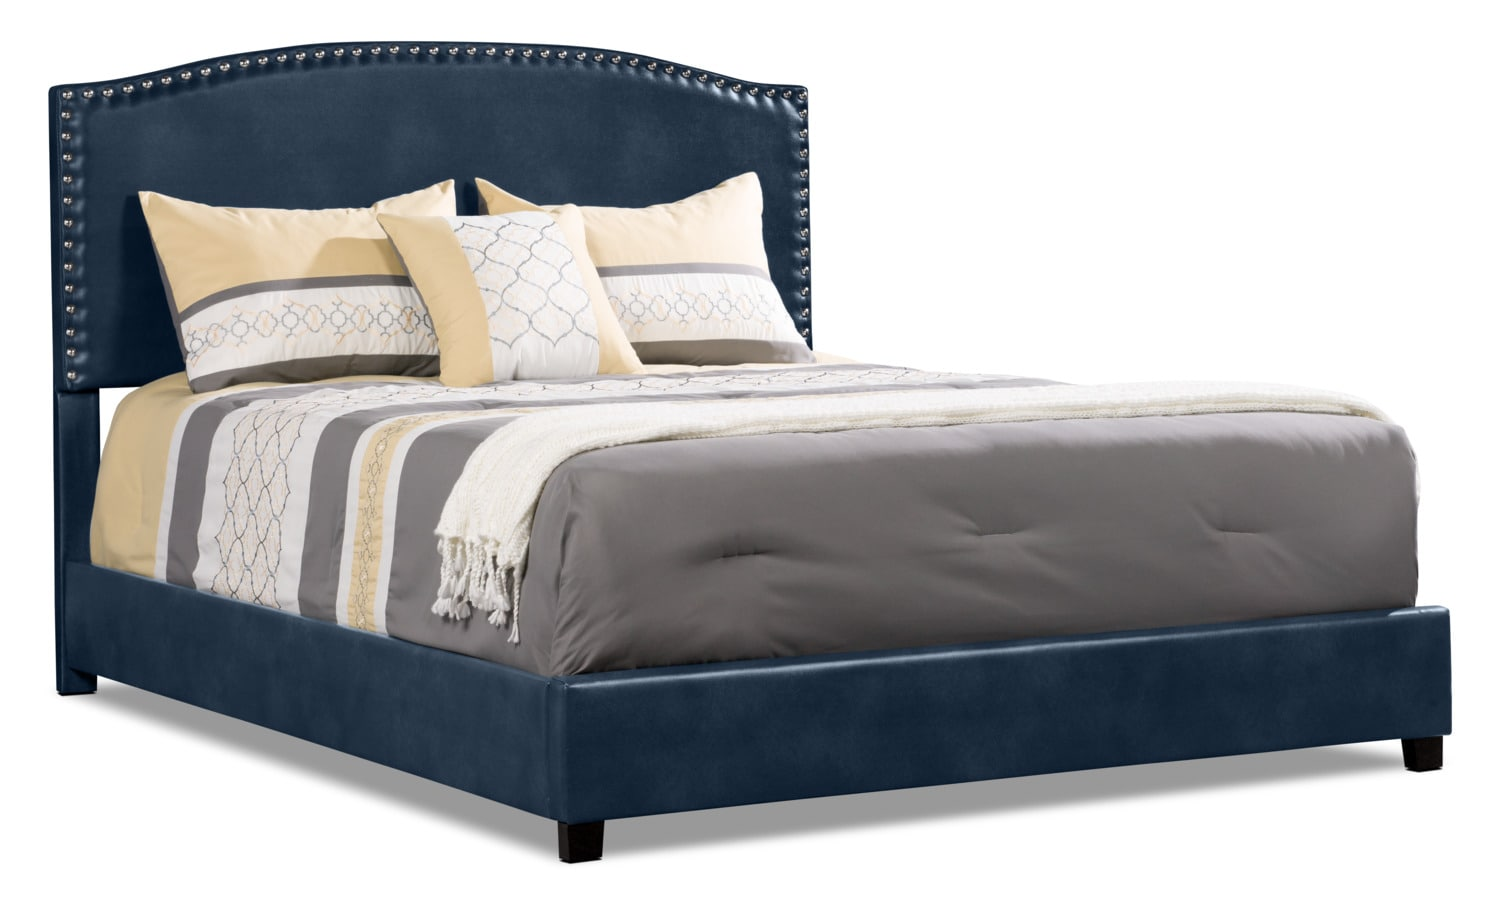 Kids Furniture - Benjamin Full Bed - Navy